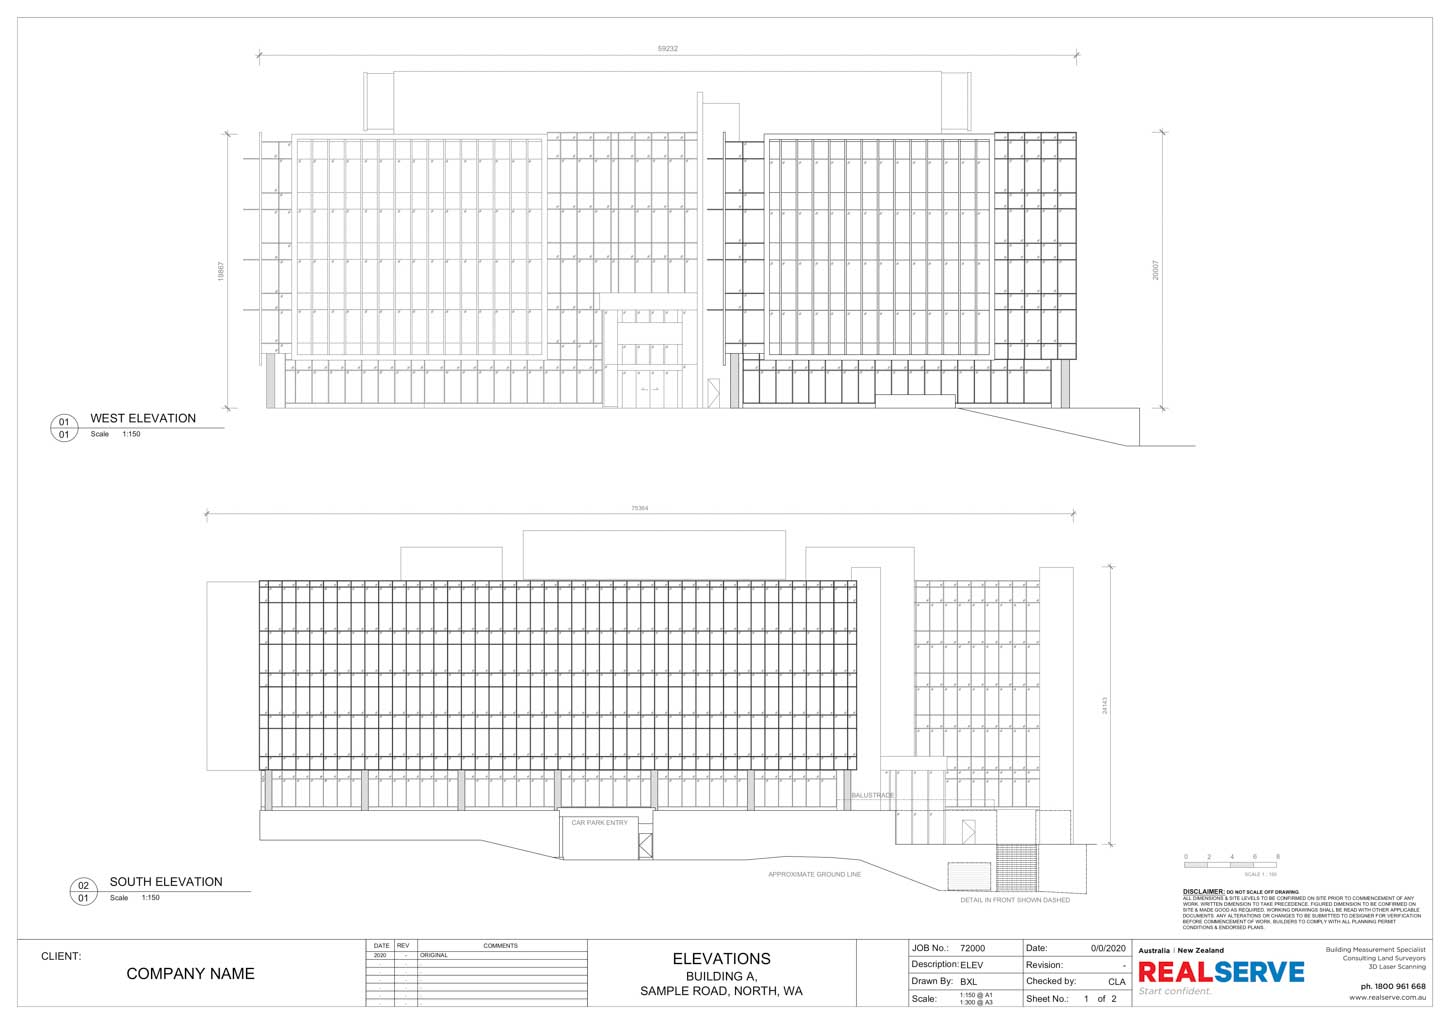 A SAMPLE OF A FACADE ELEVATIONS PLAN BY REALSERVE OF A BUILDING